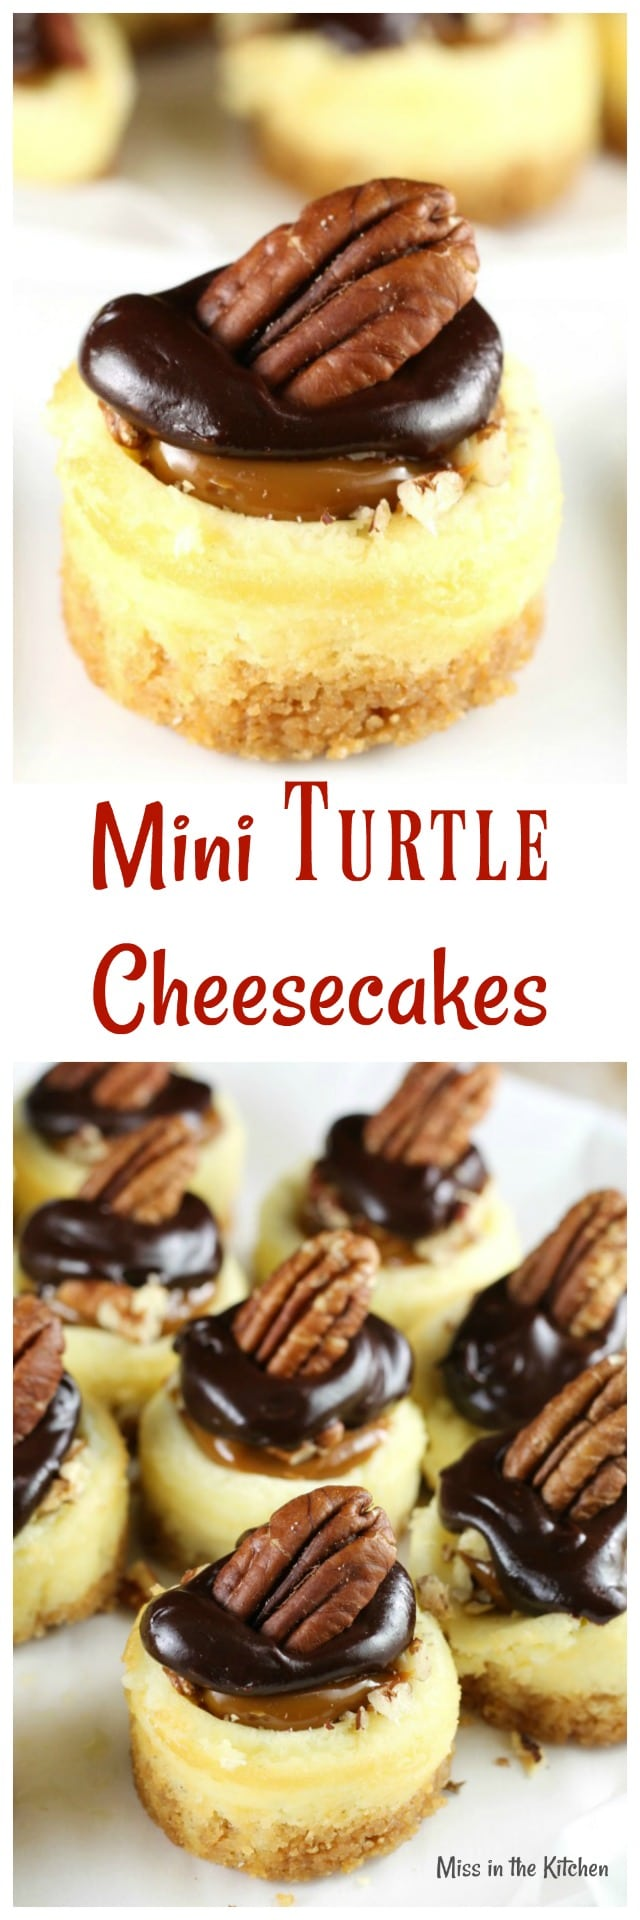 Mini Turtle Cheesecakes Recipe ~ Easy dessert for holidays and celebrations from MissintheKitchen.com #ad